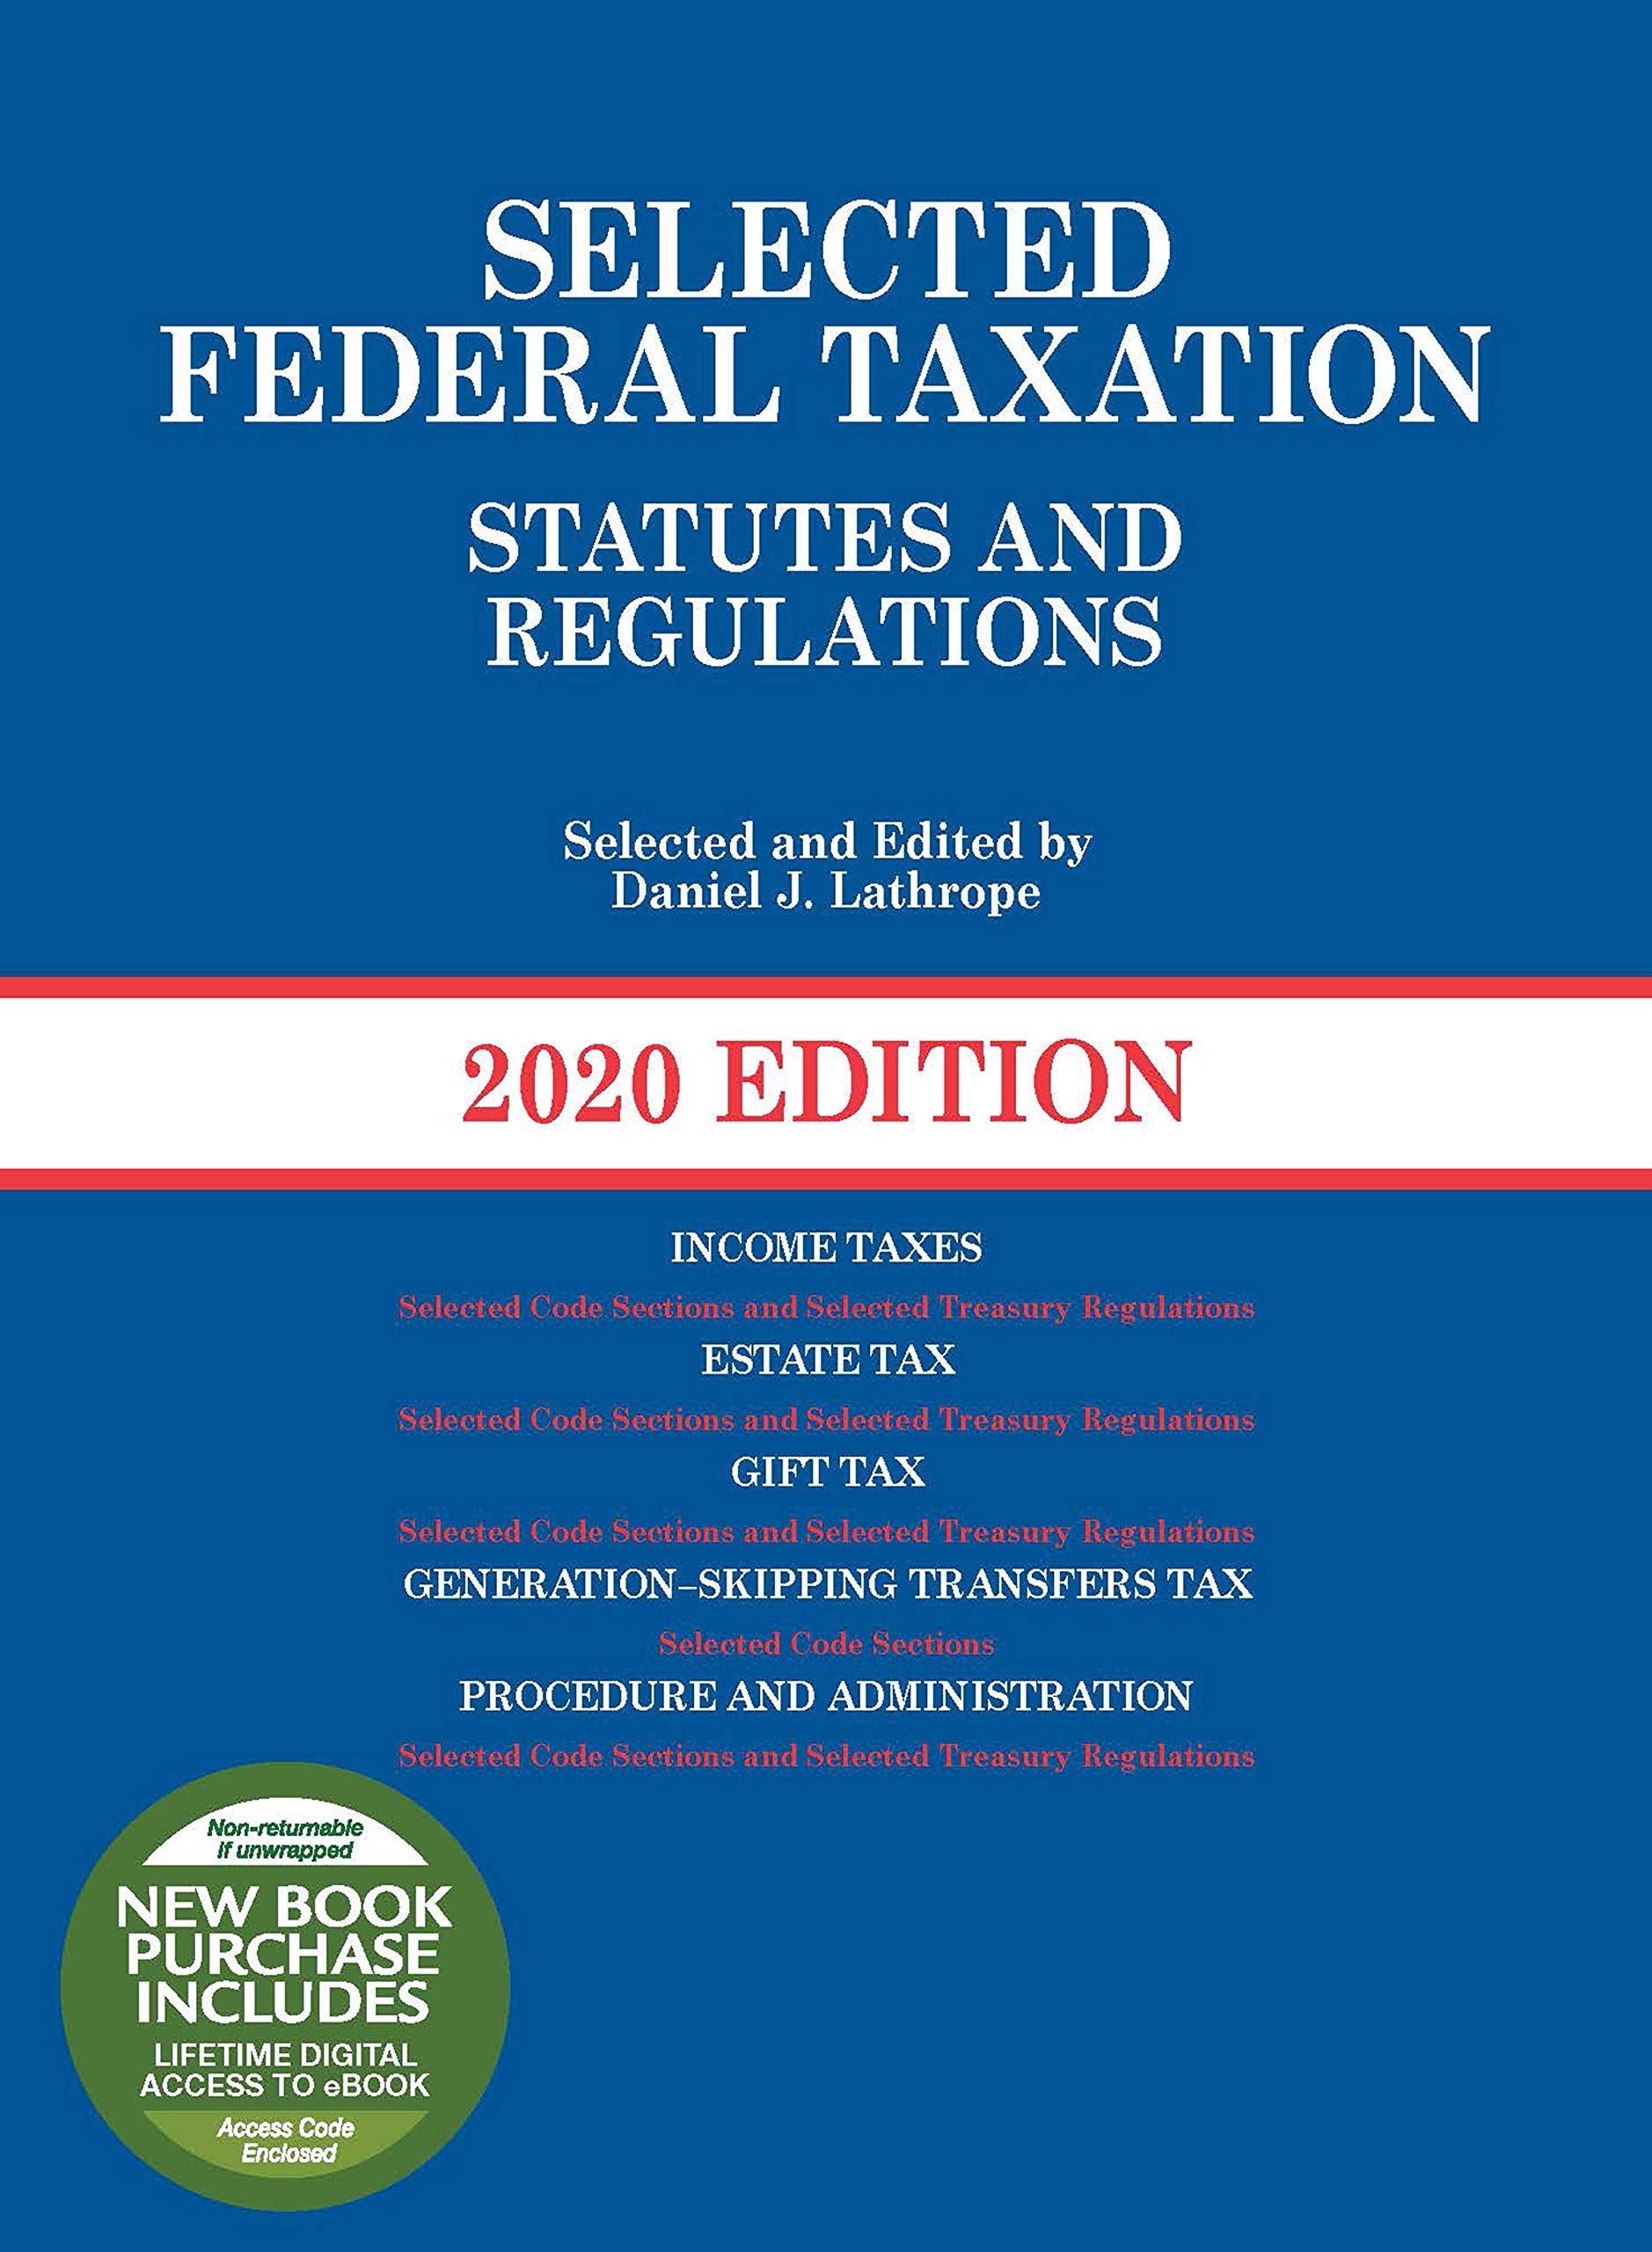 Selected Federal Taxation Statutes and Regulations, 2020 with Motro Tax Map (Selected Statutes) by West Academic Publishing